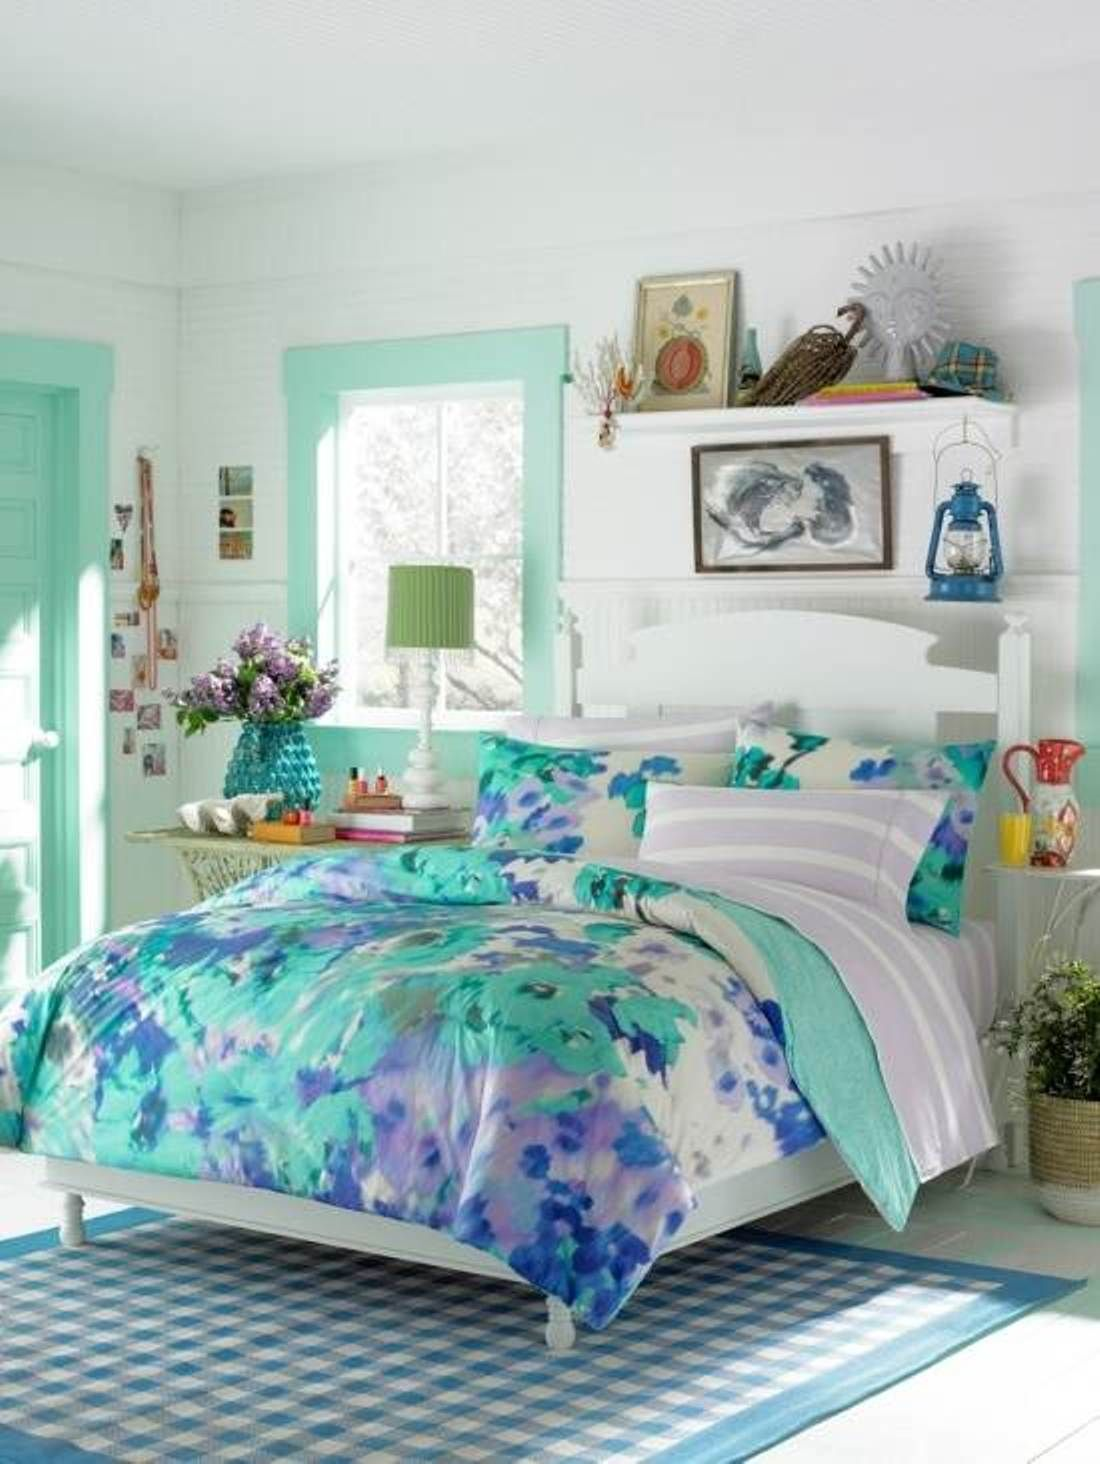 Bed sheets for teenagers - White Wall Ceiling Color Teen Bedroom Themes With Soft Blue Leaf Motive Bedding And White Wood Headboard On Soft Blue White Mosaic Style Rug Area Also Green